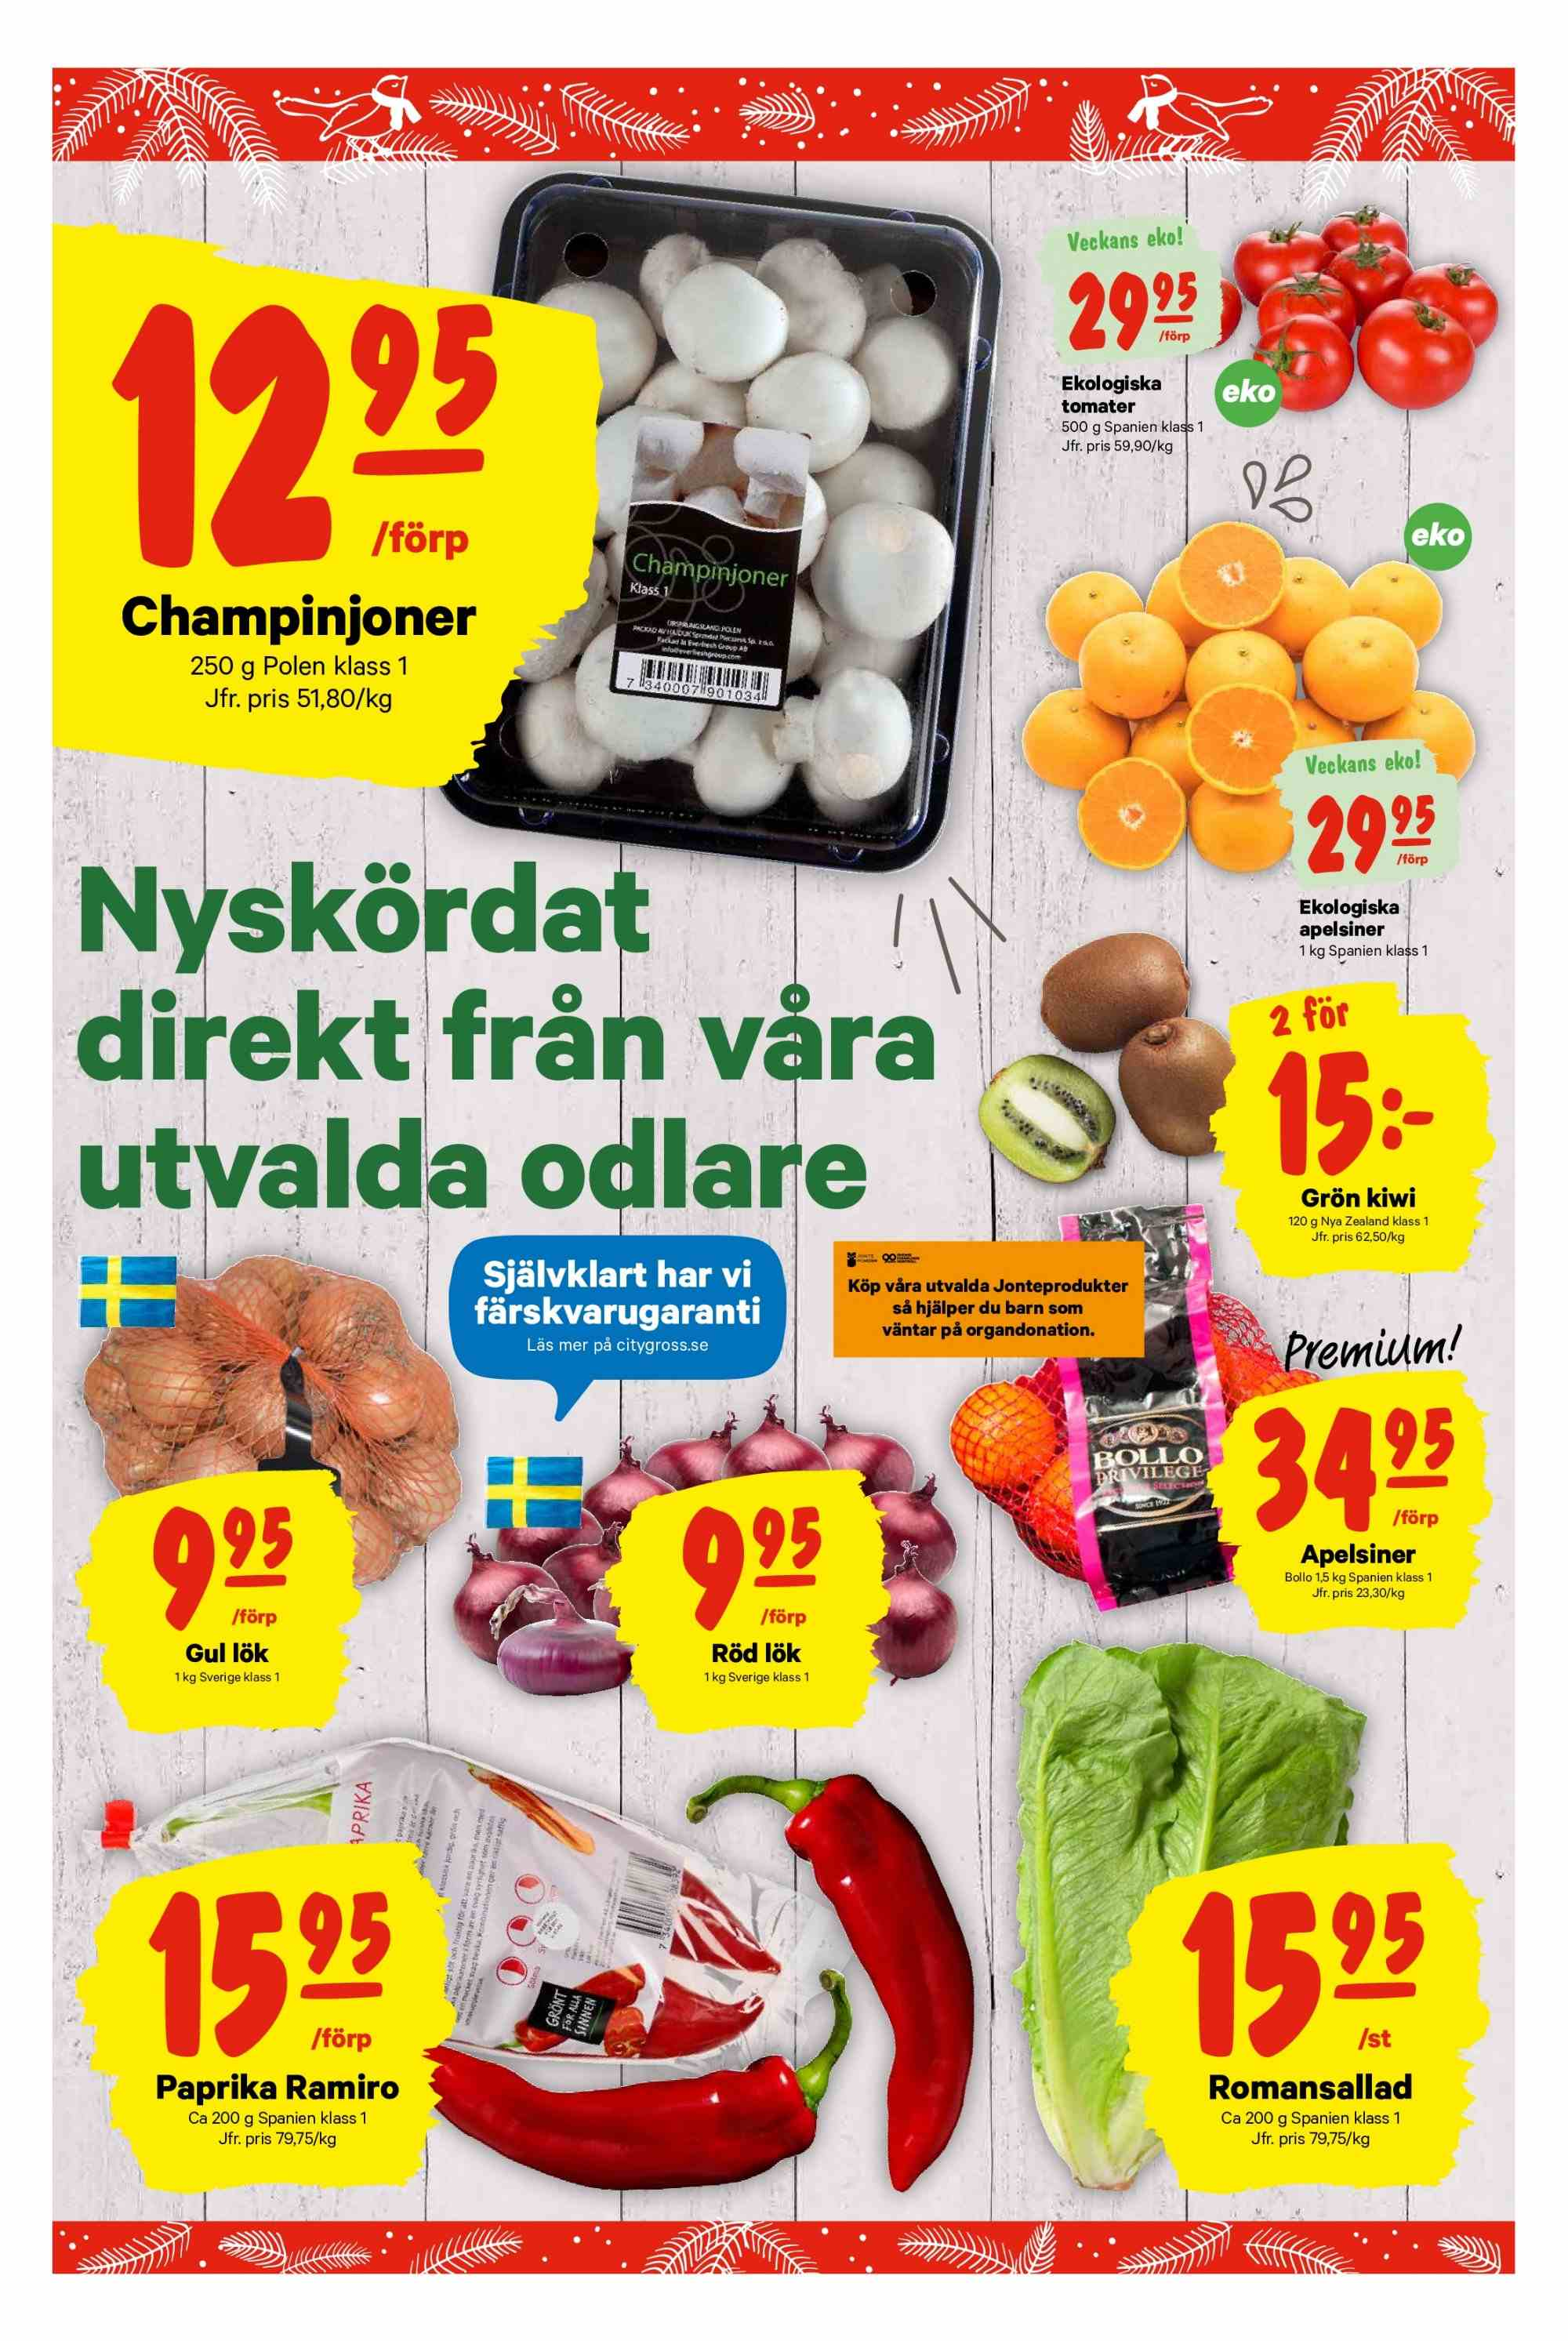 City Gross reklamblad - 26/11 2018 - 2/12 2018. Sida 4.